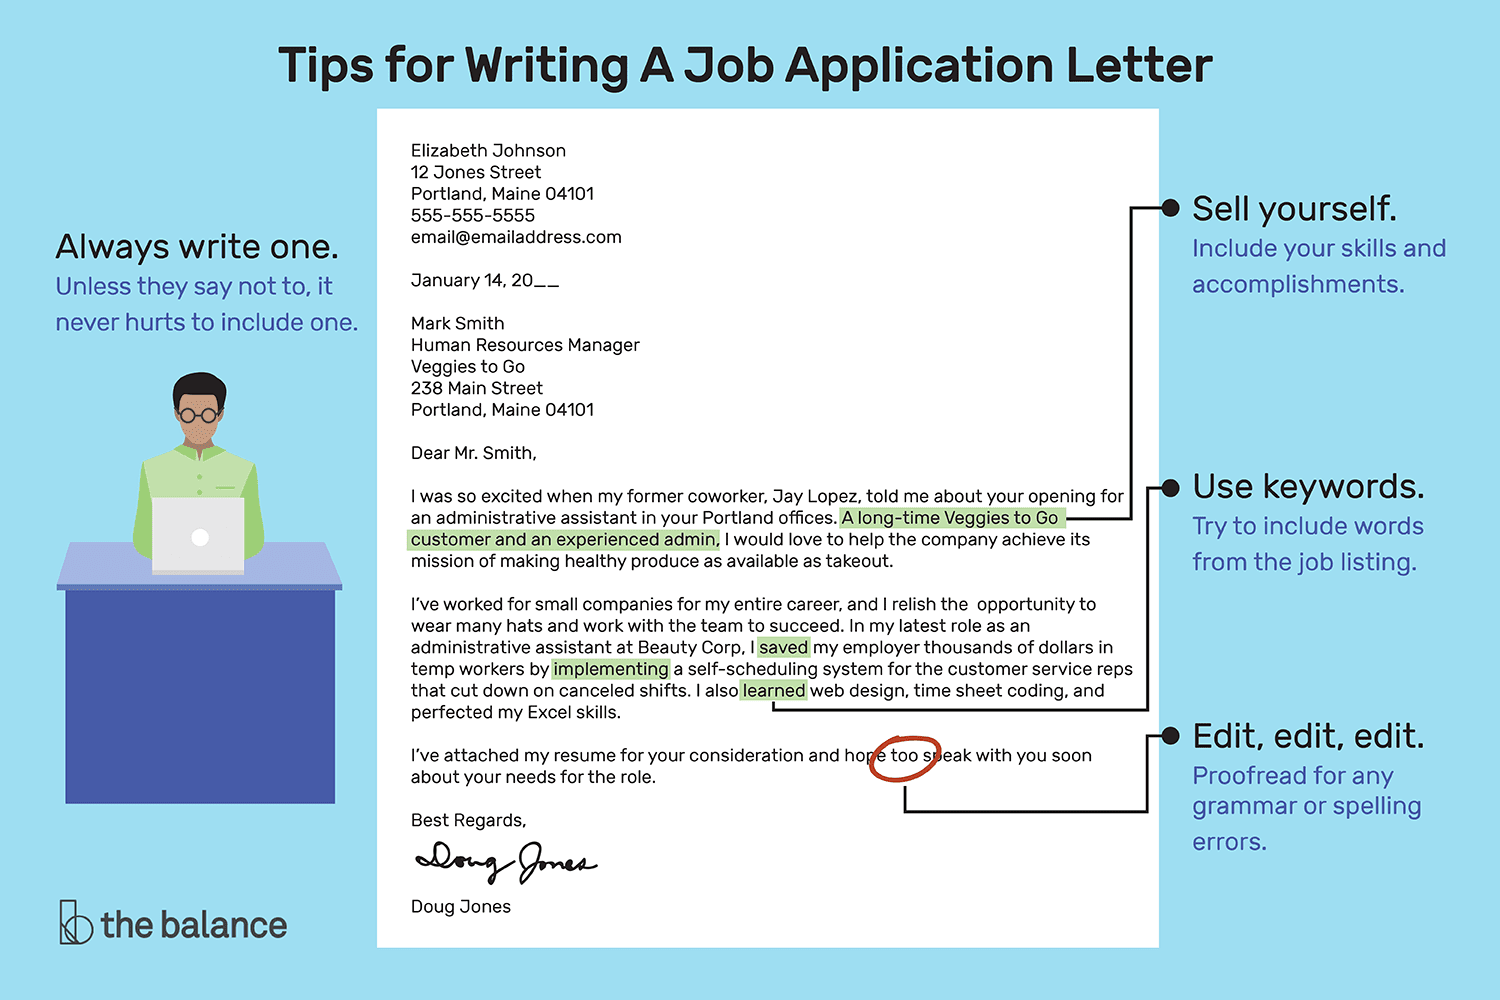 How to write an application letter for a job vacancy